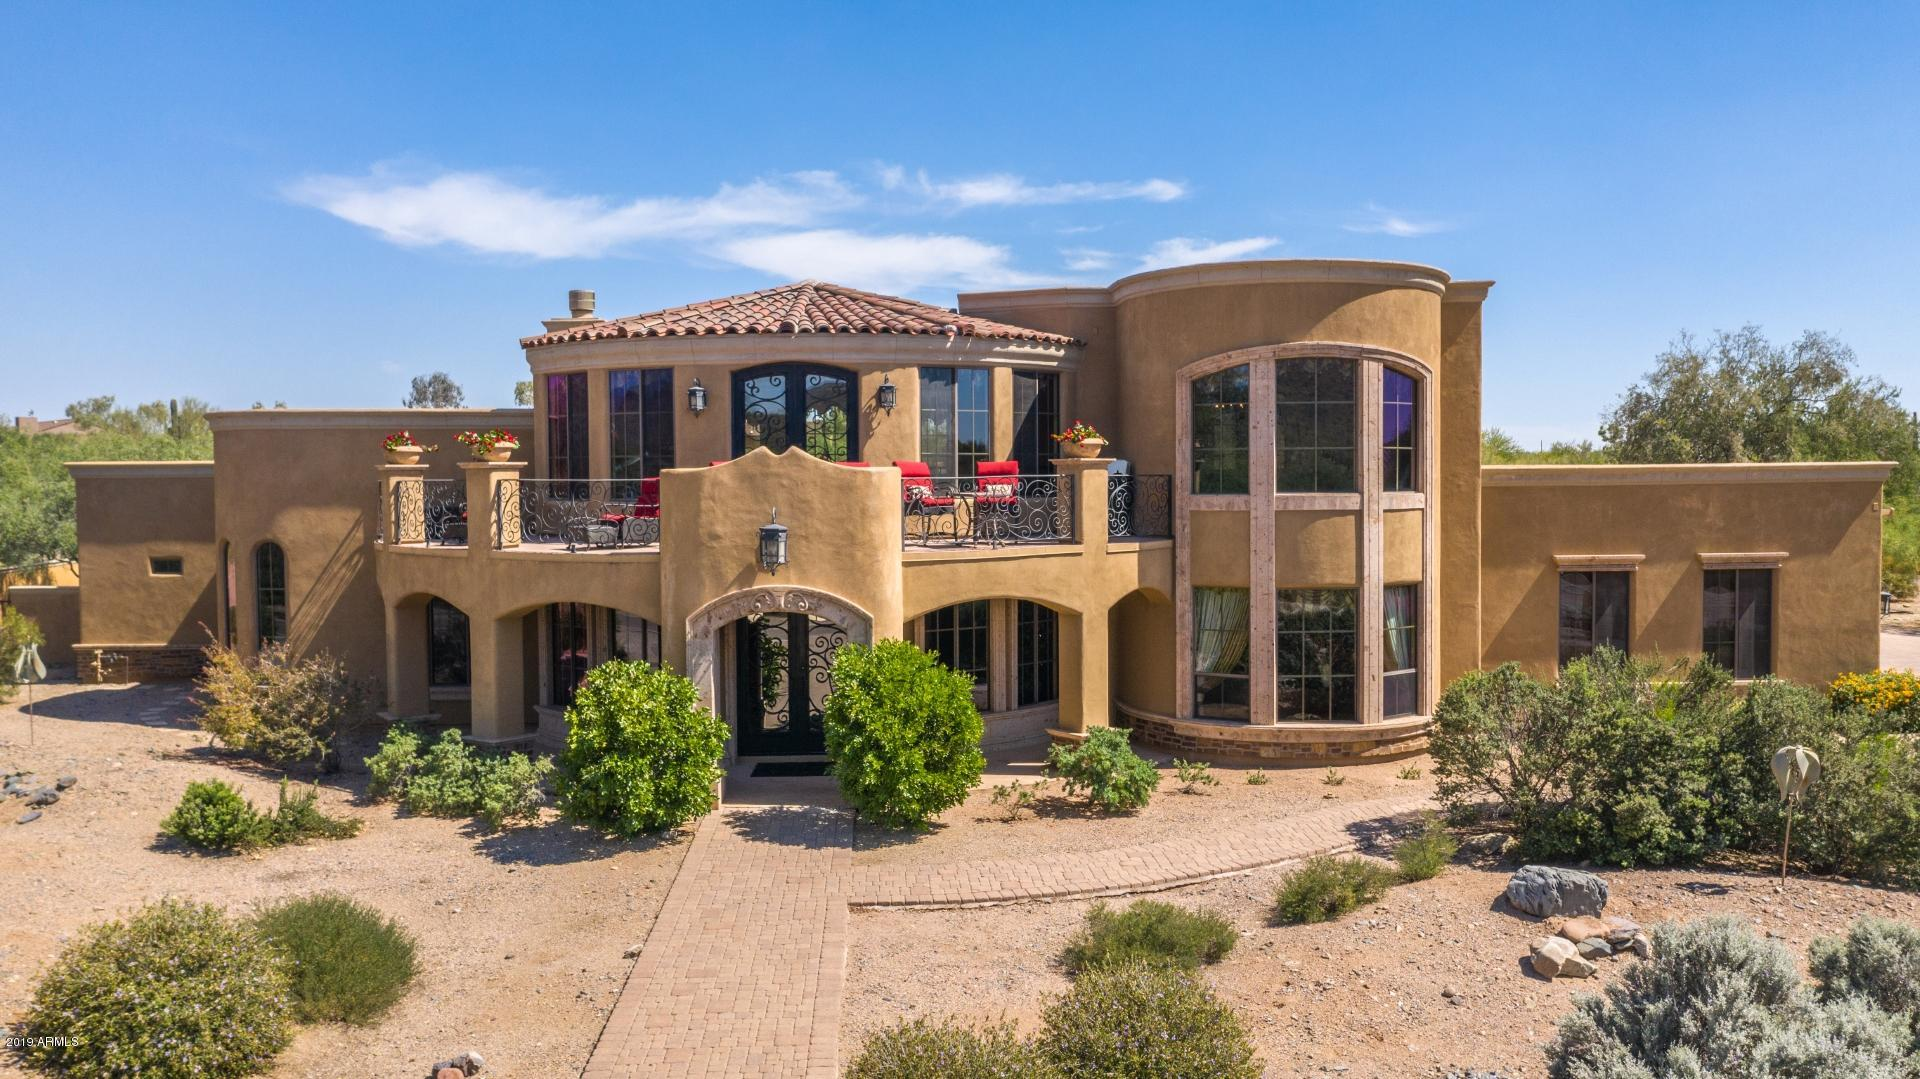 4690 E GALVIN Street, Cave Creek, Arizona